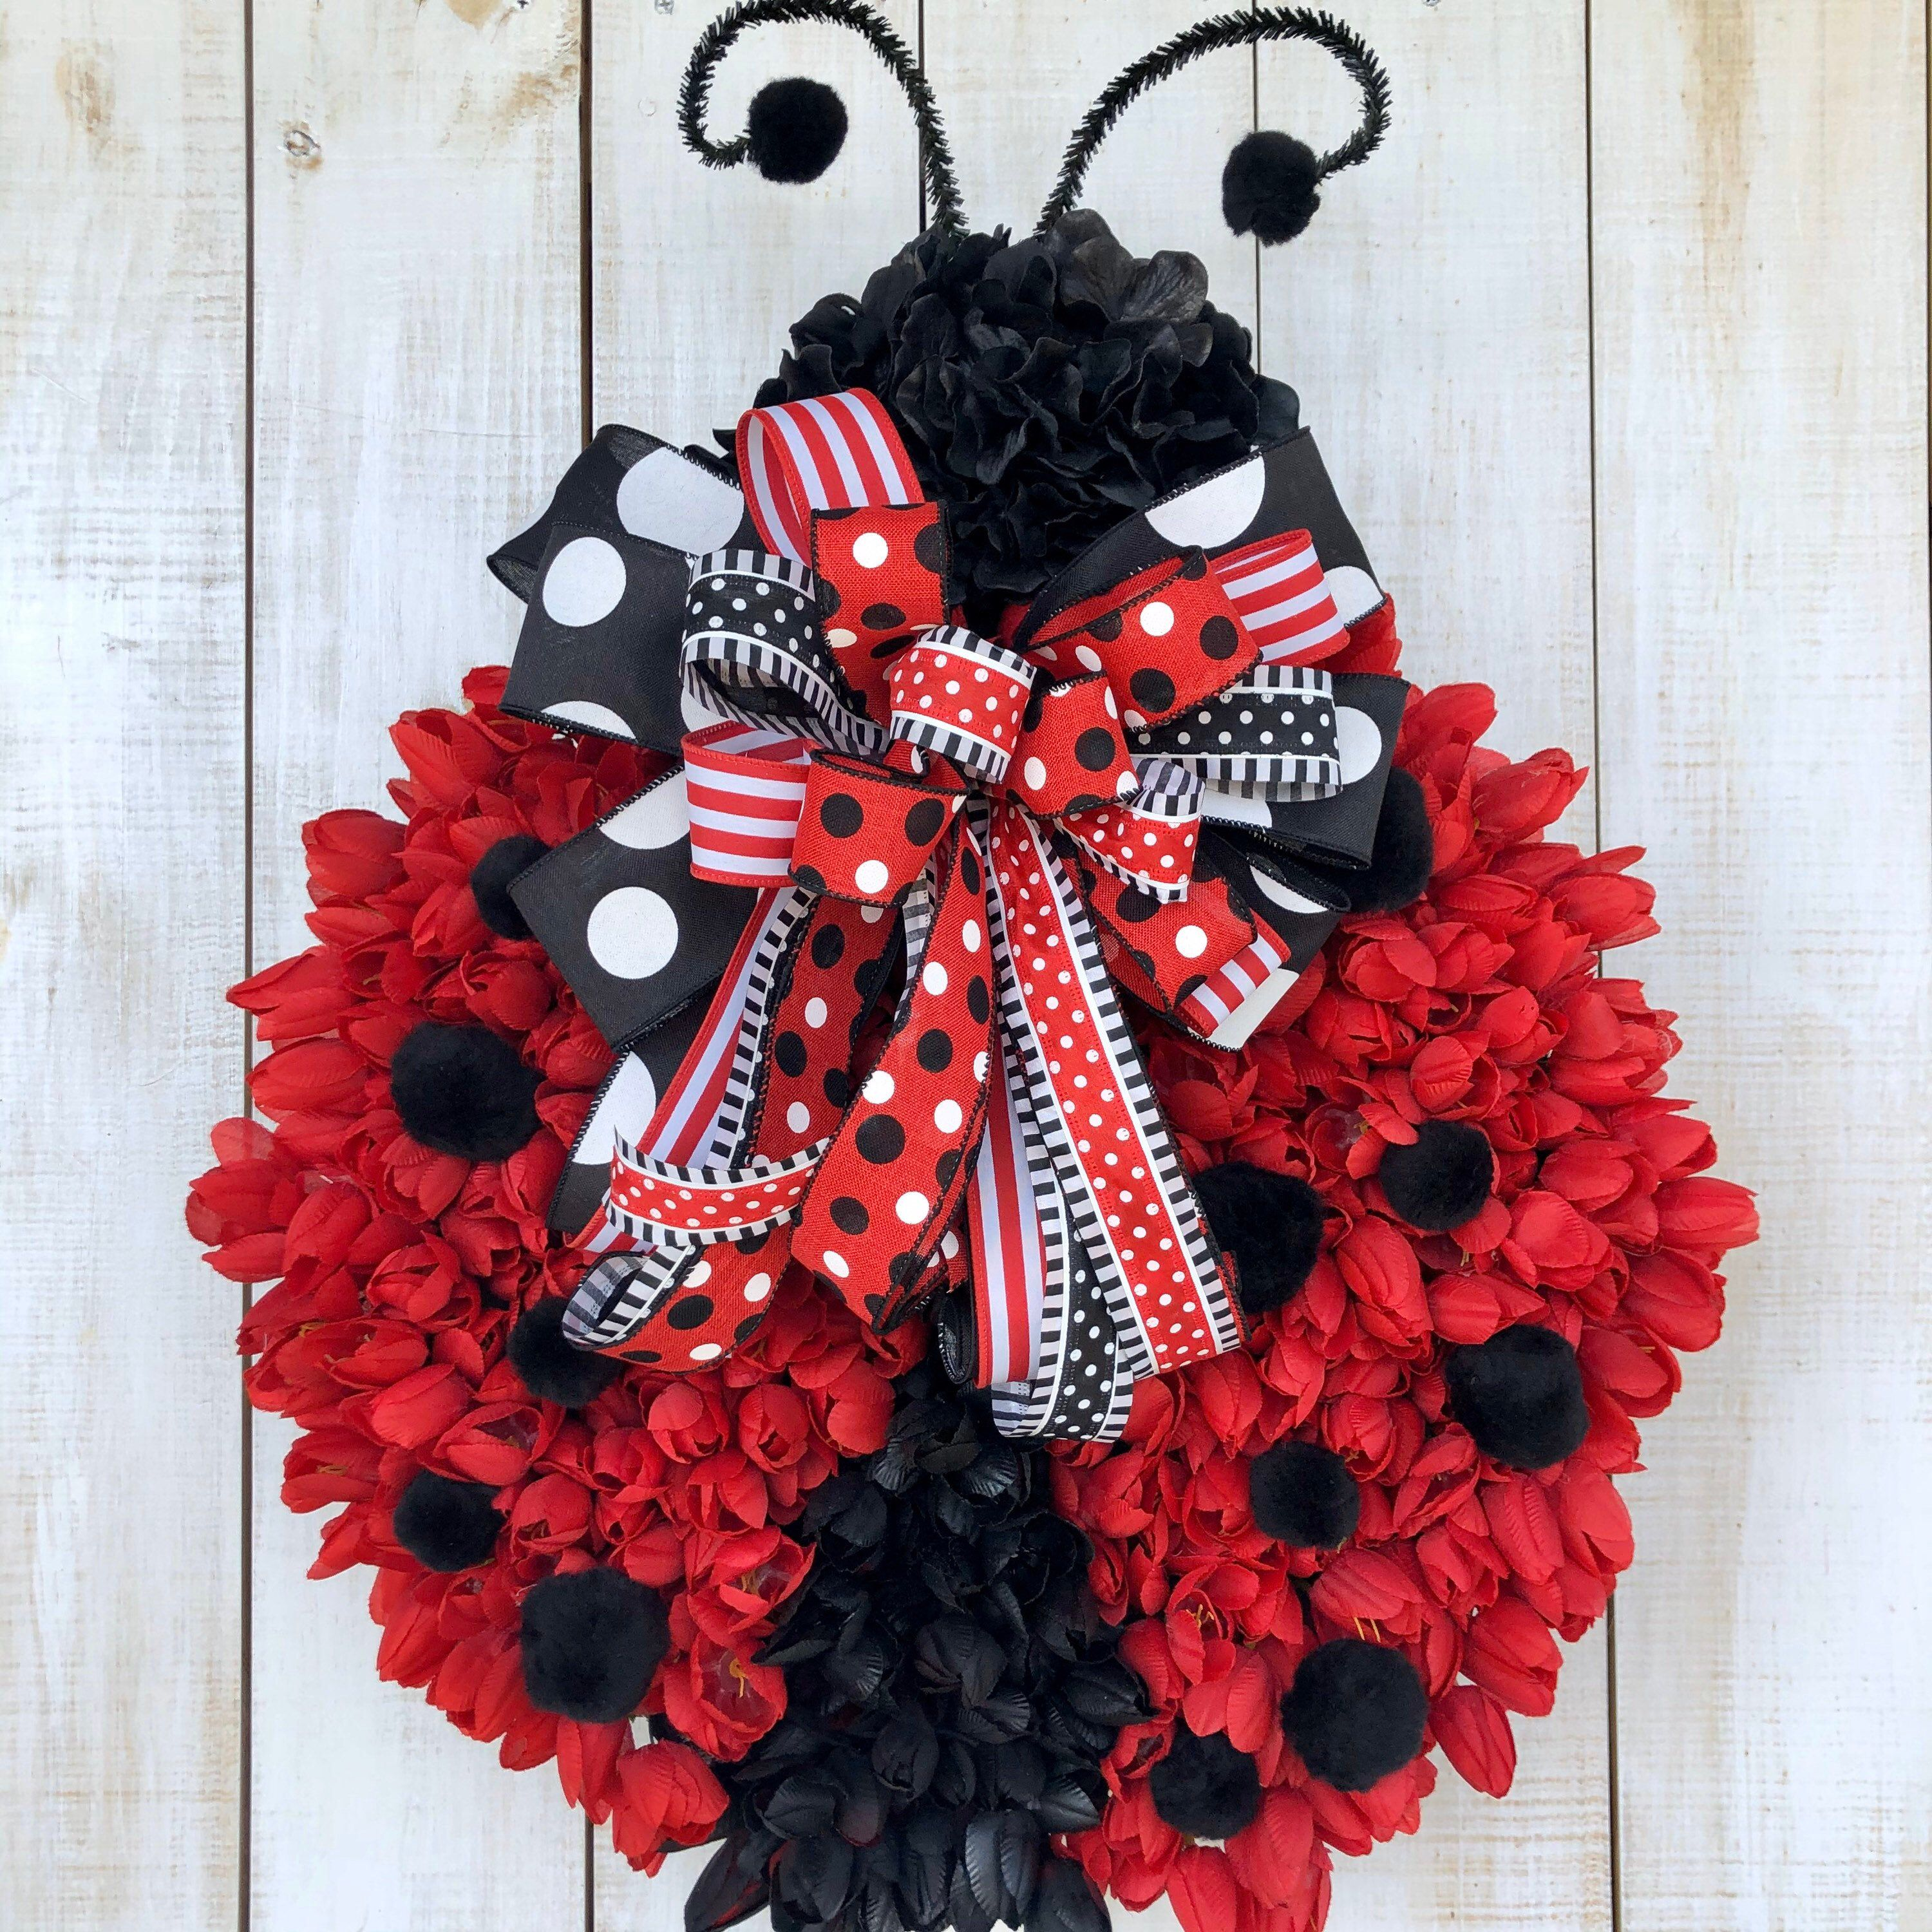 Ladybug Wreath Red Tulip Everyday All Season Spring Or Summer Door Hanger Farmhouse Decor For Front Door Home Business Or Gift Idea In 2020 Ladybug Wreath Summer Door Hanger Wreaths